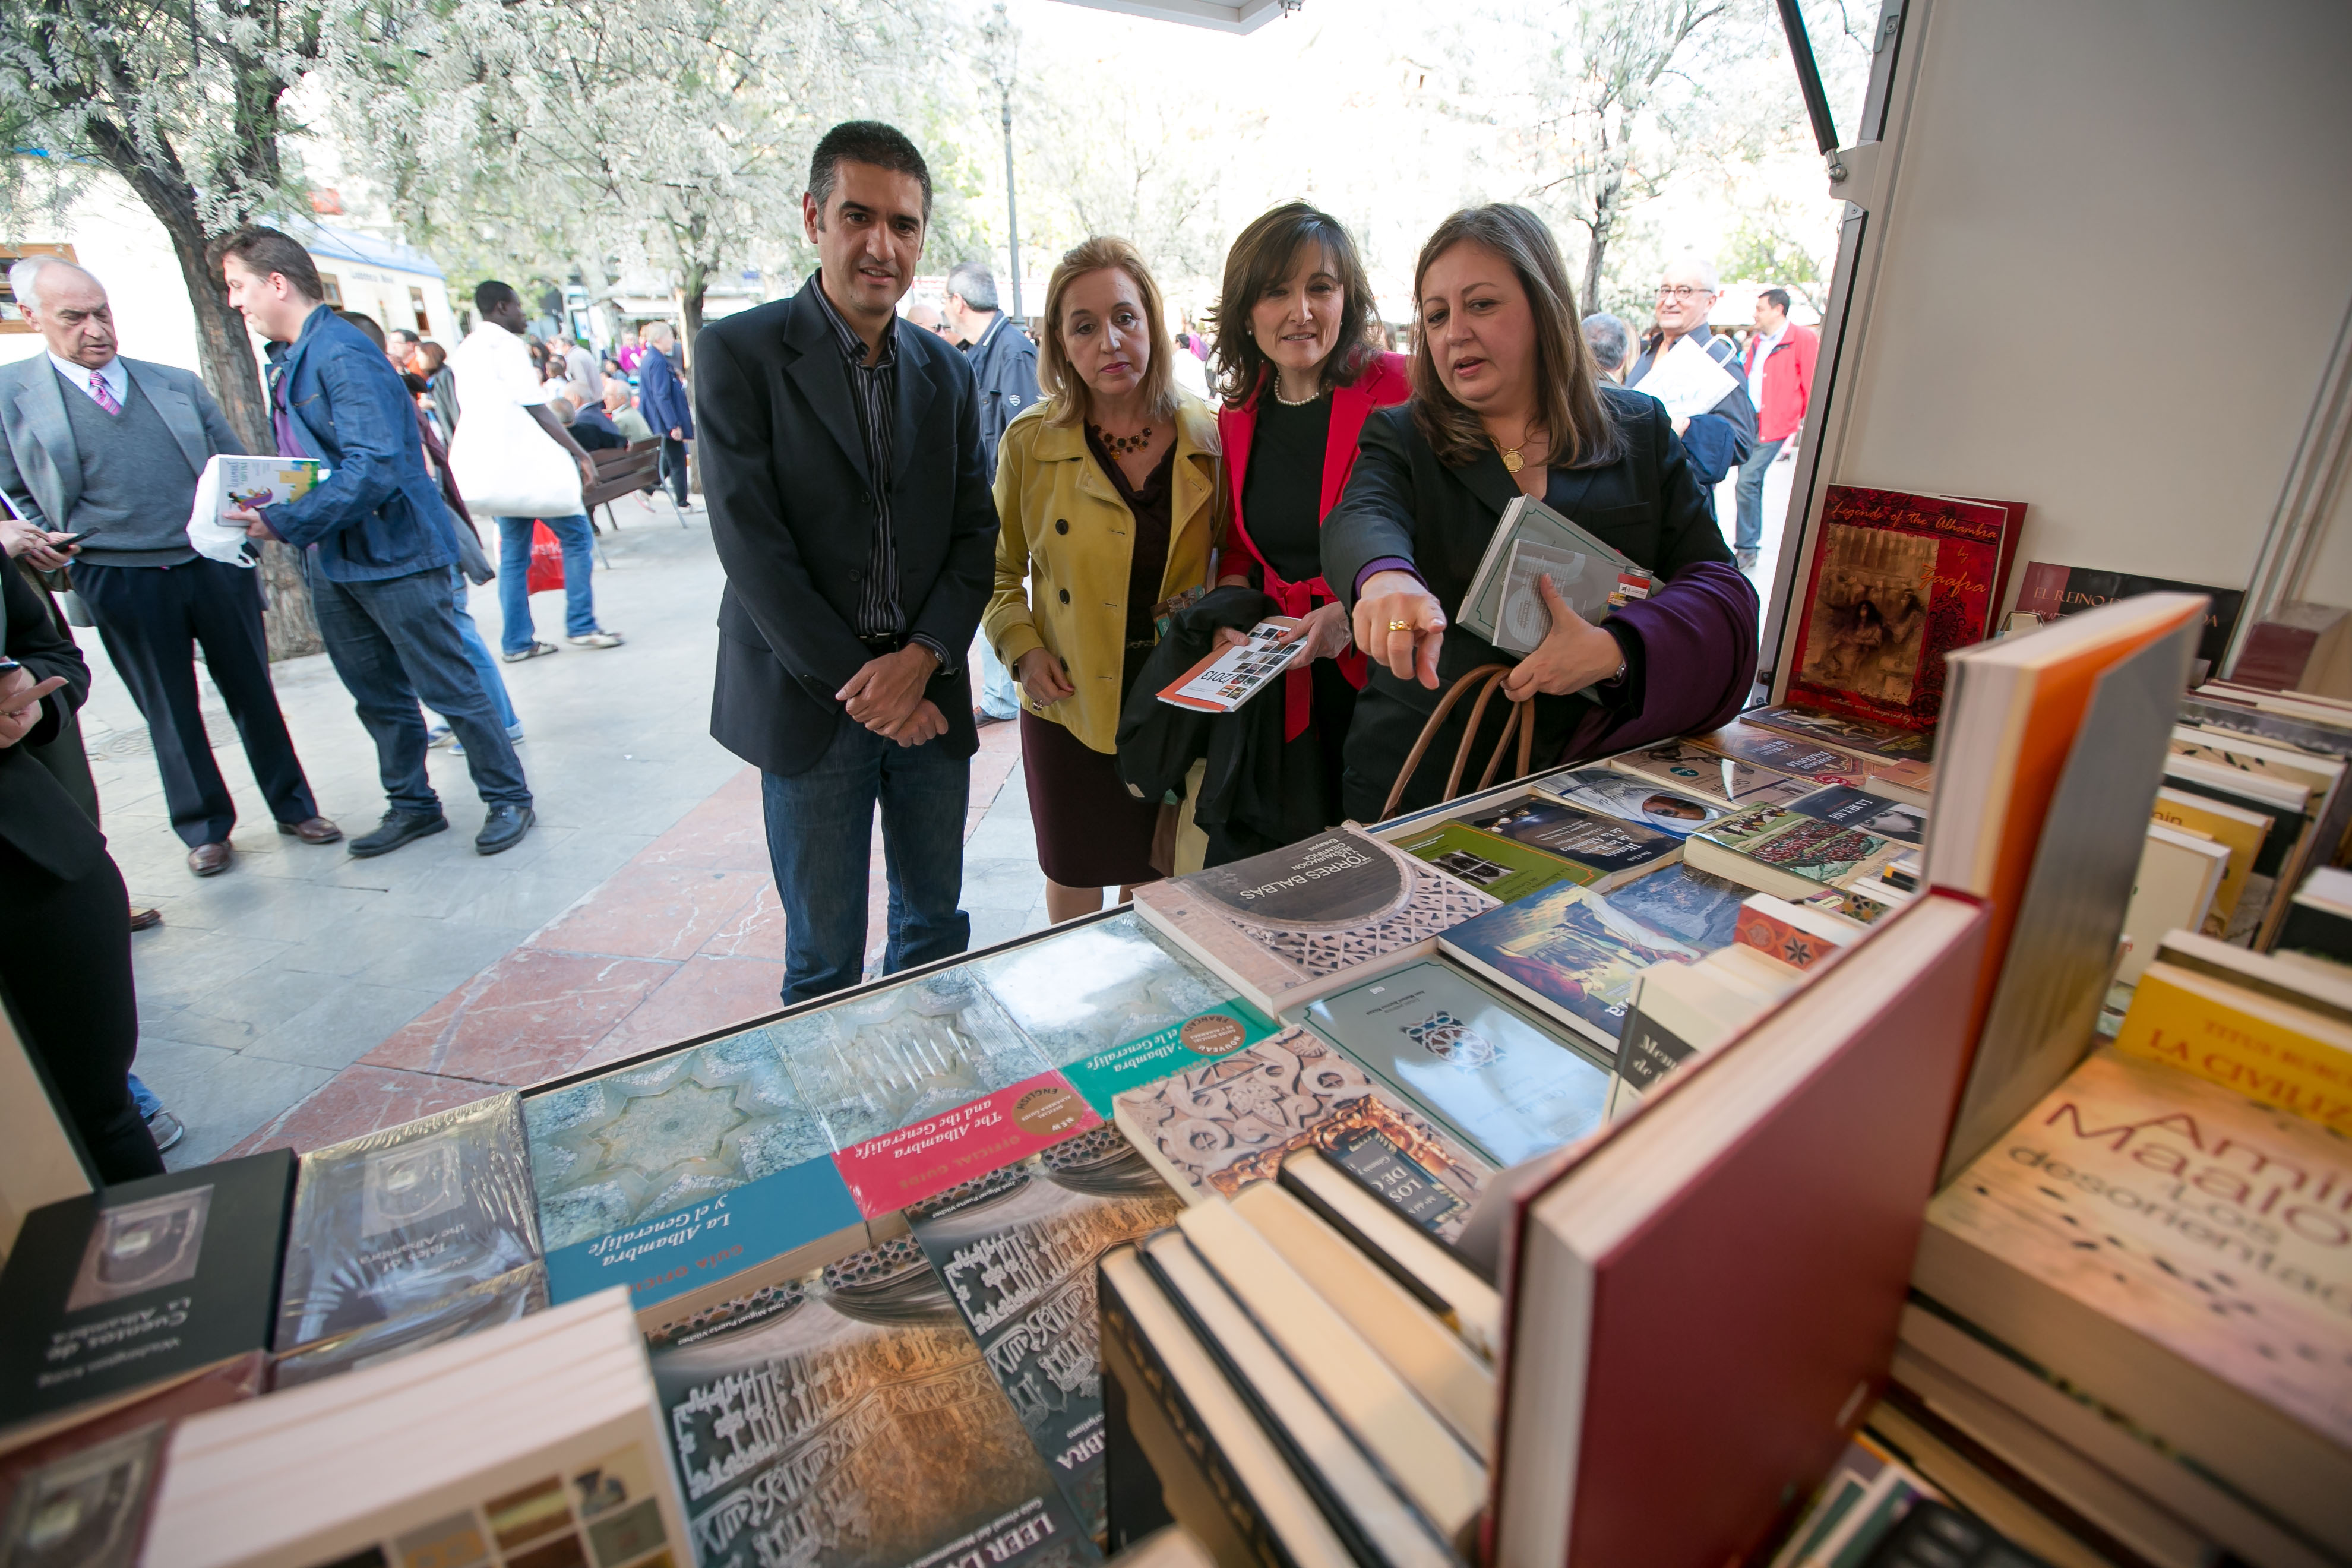 The Alhambra presents its new titles at the Granada Book Fair